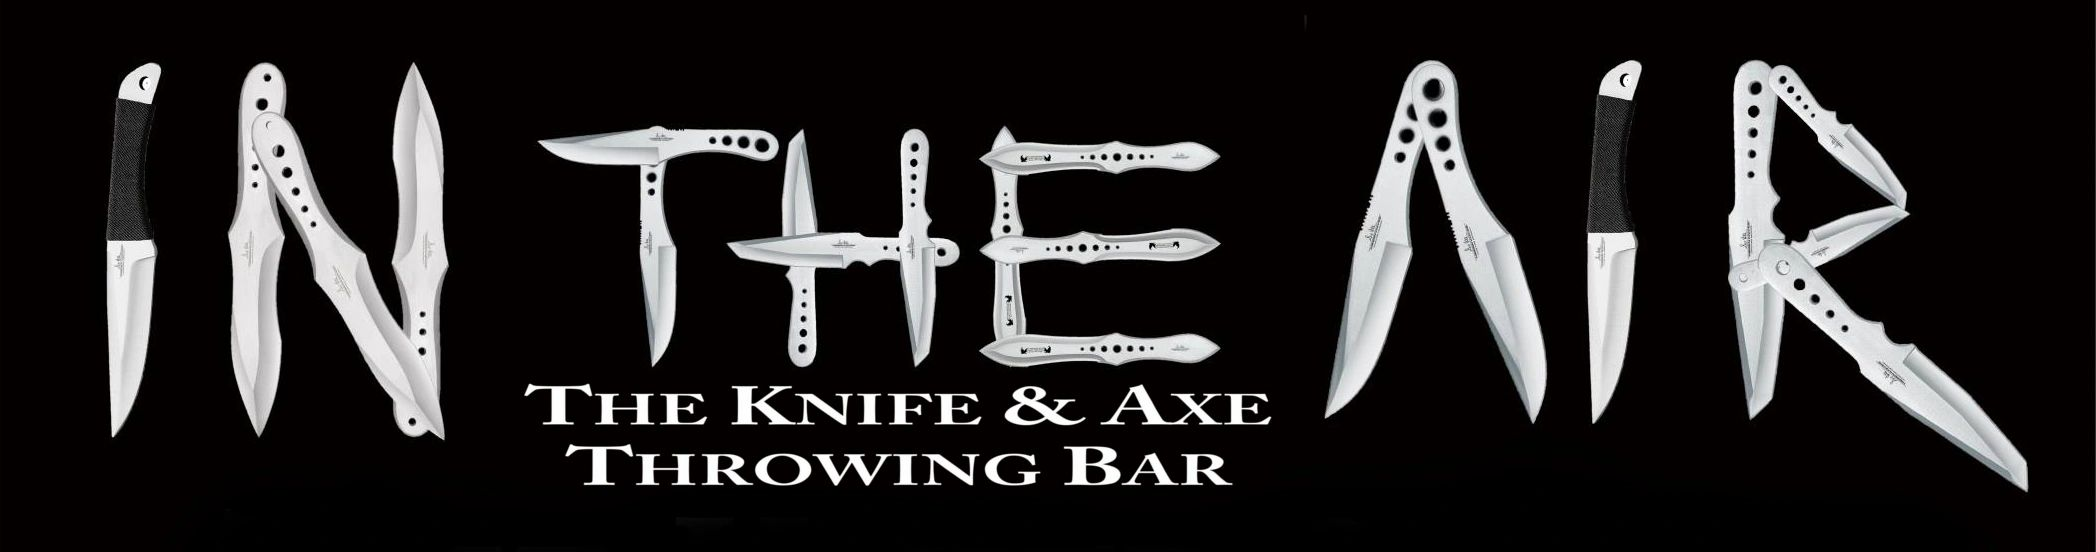 In The Air Knife and Axe Throwing Bar bank street university fun lounge original guild party event